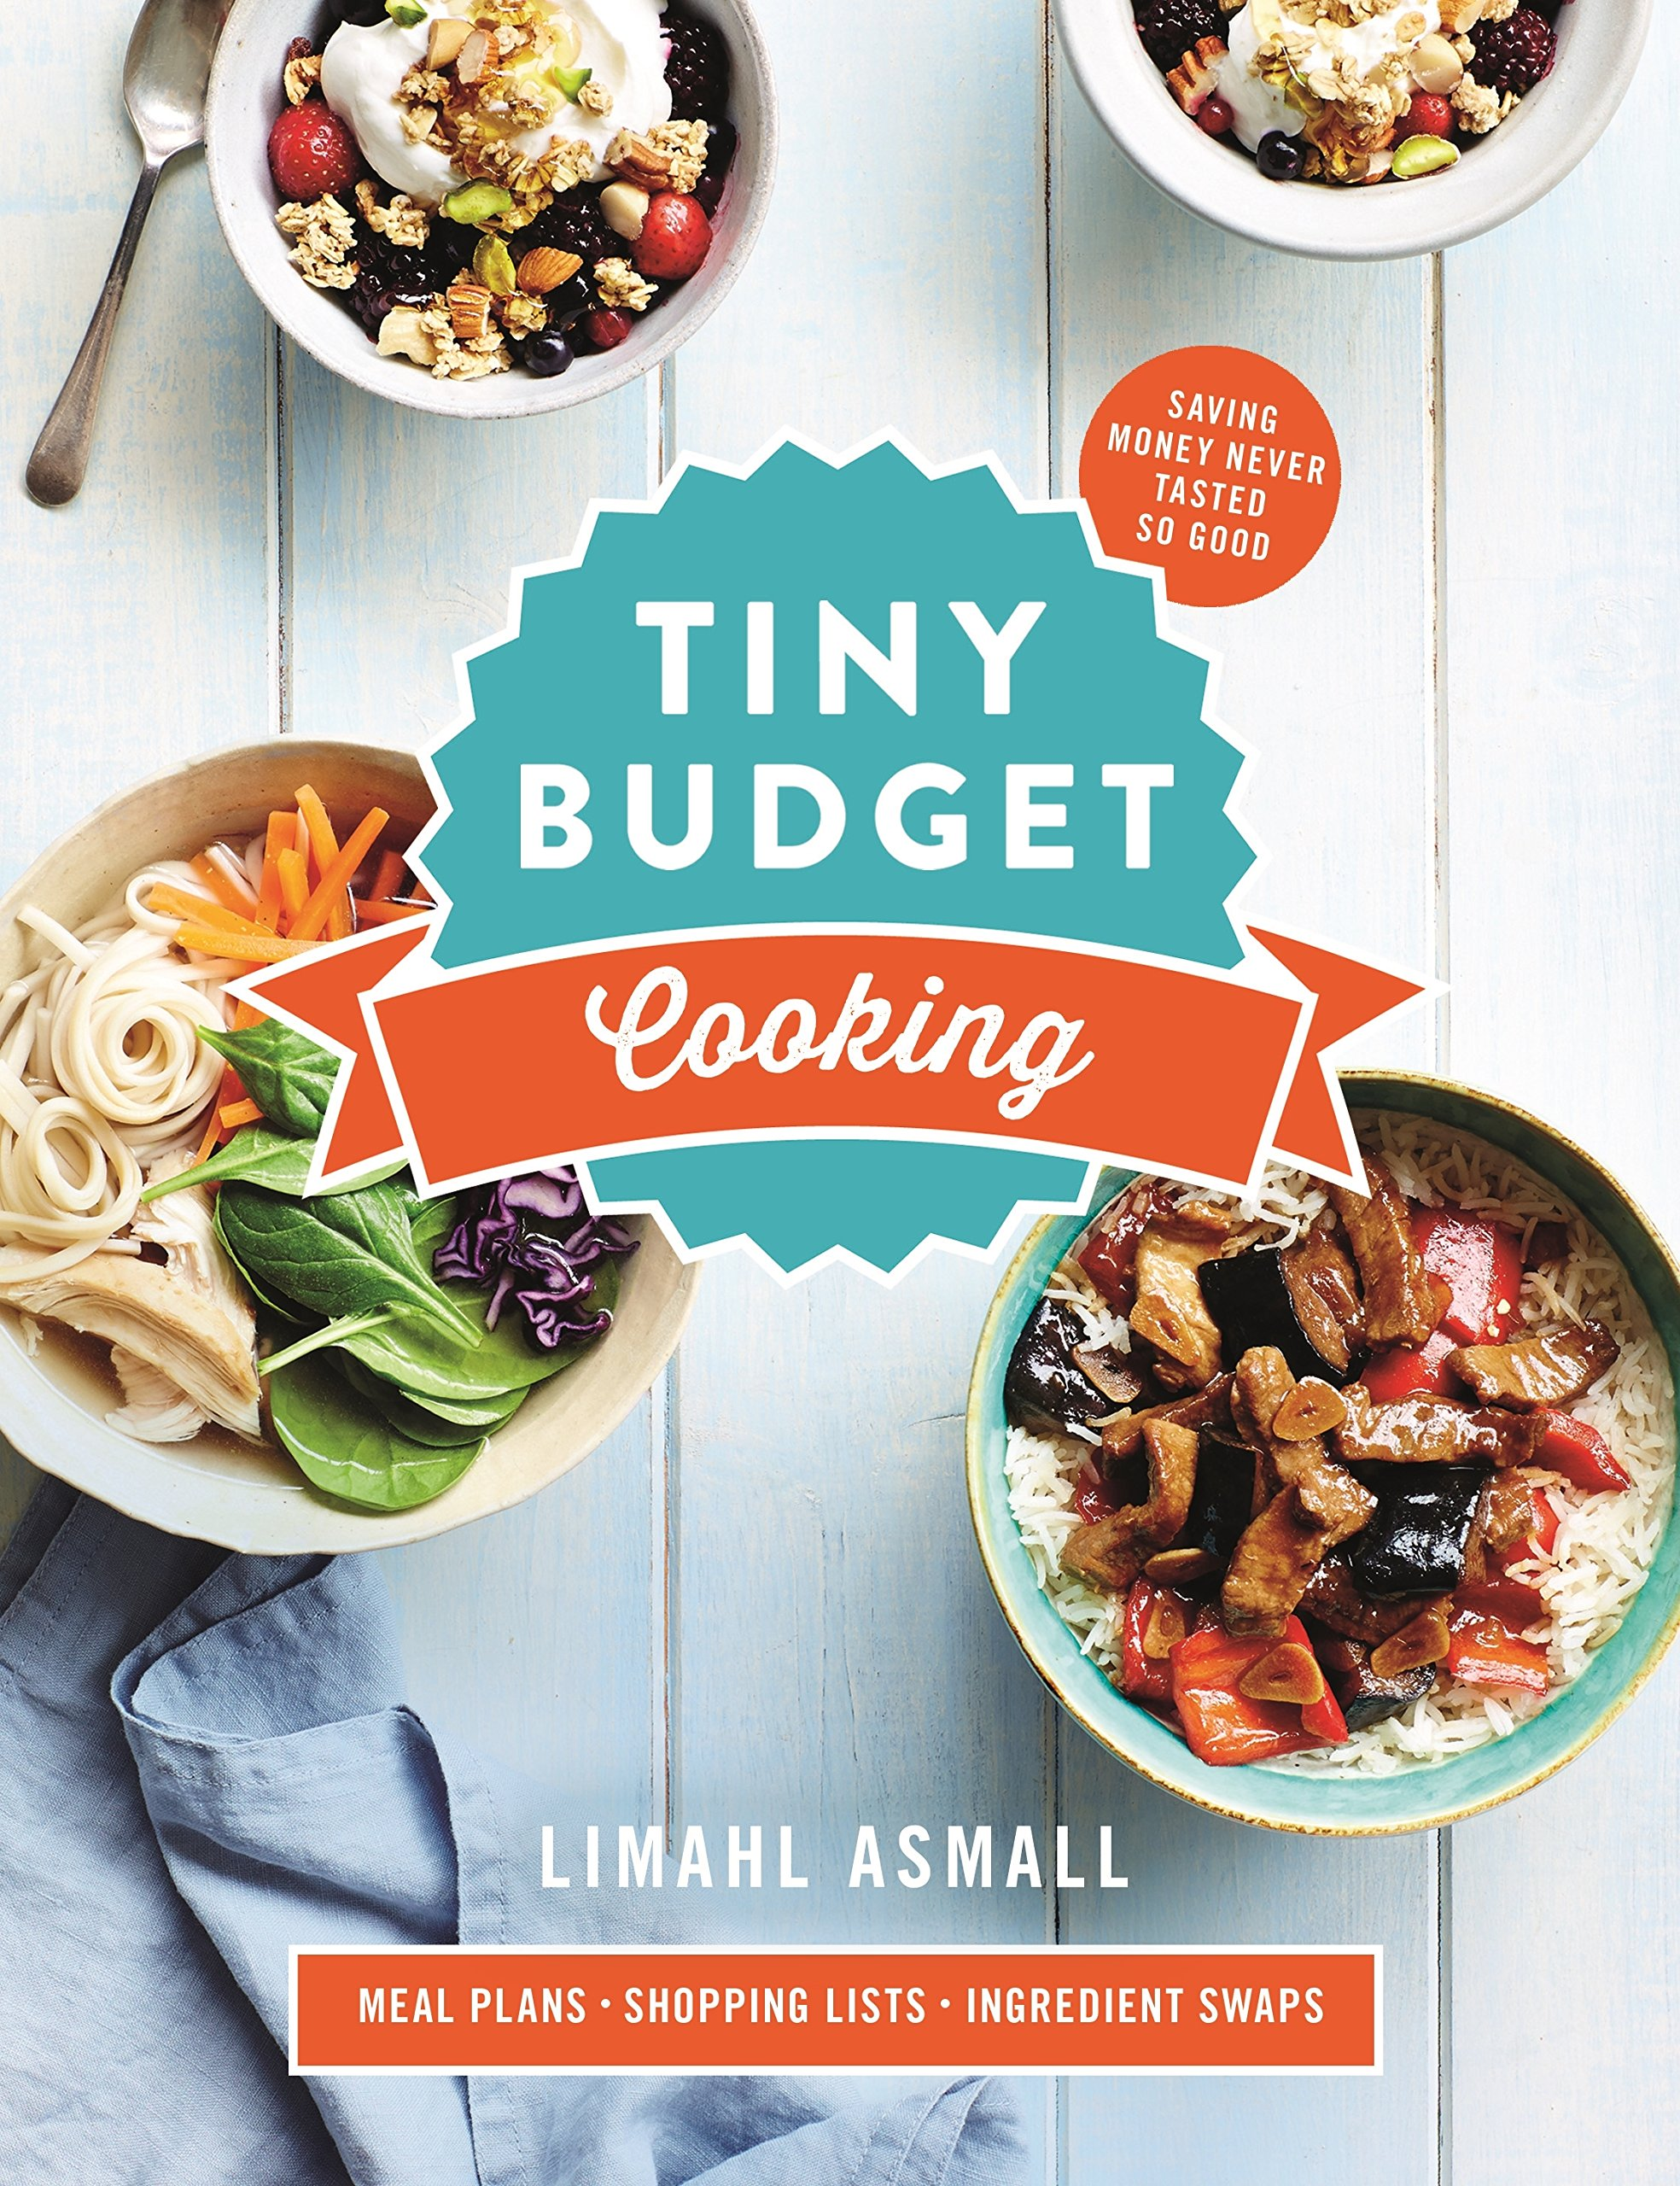 Cook quickly and tasty, and inexpensive 31